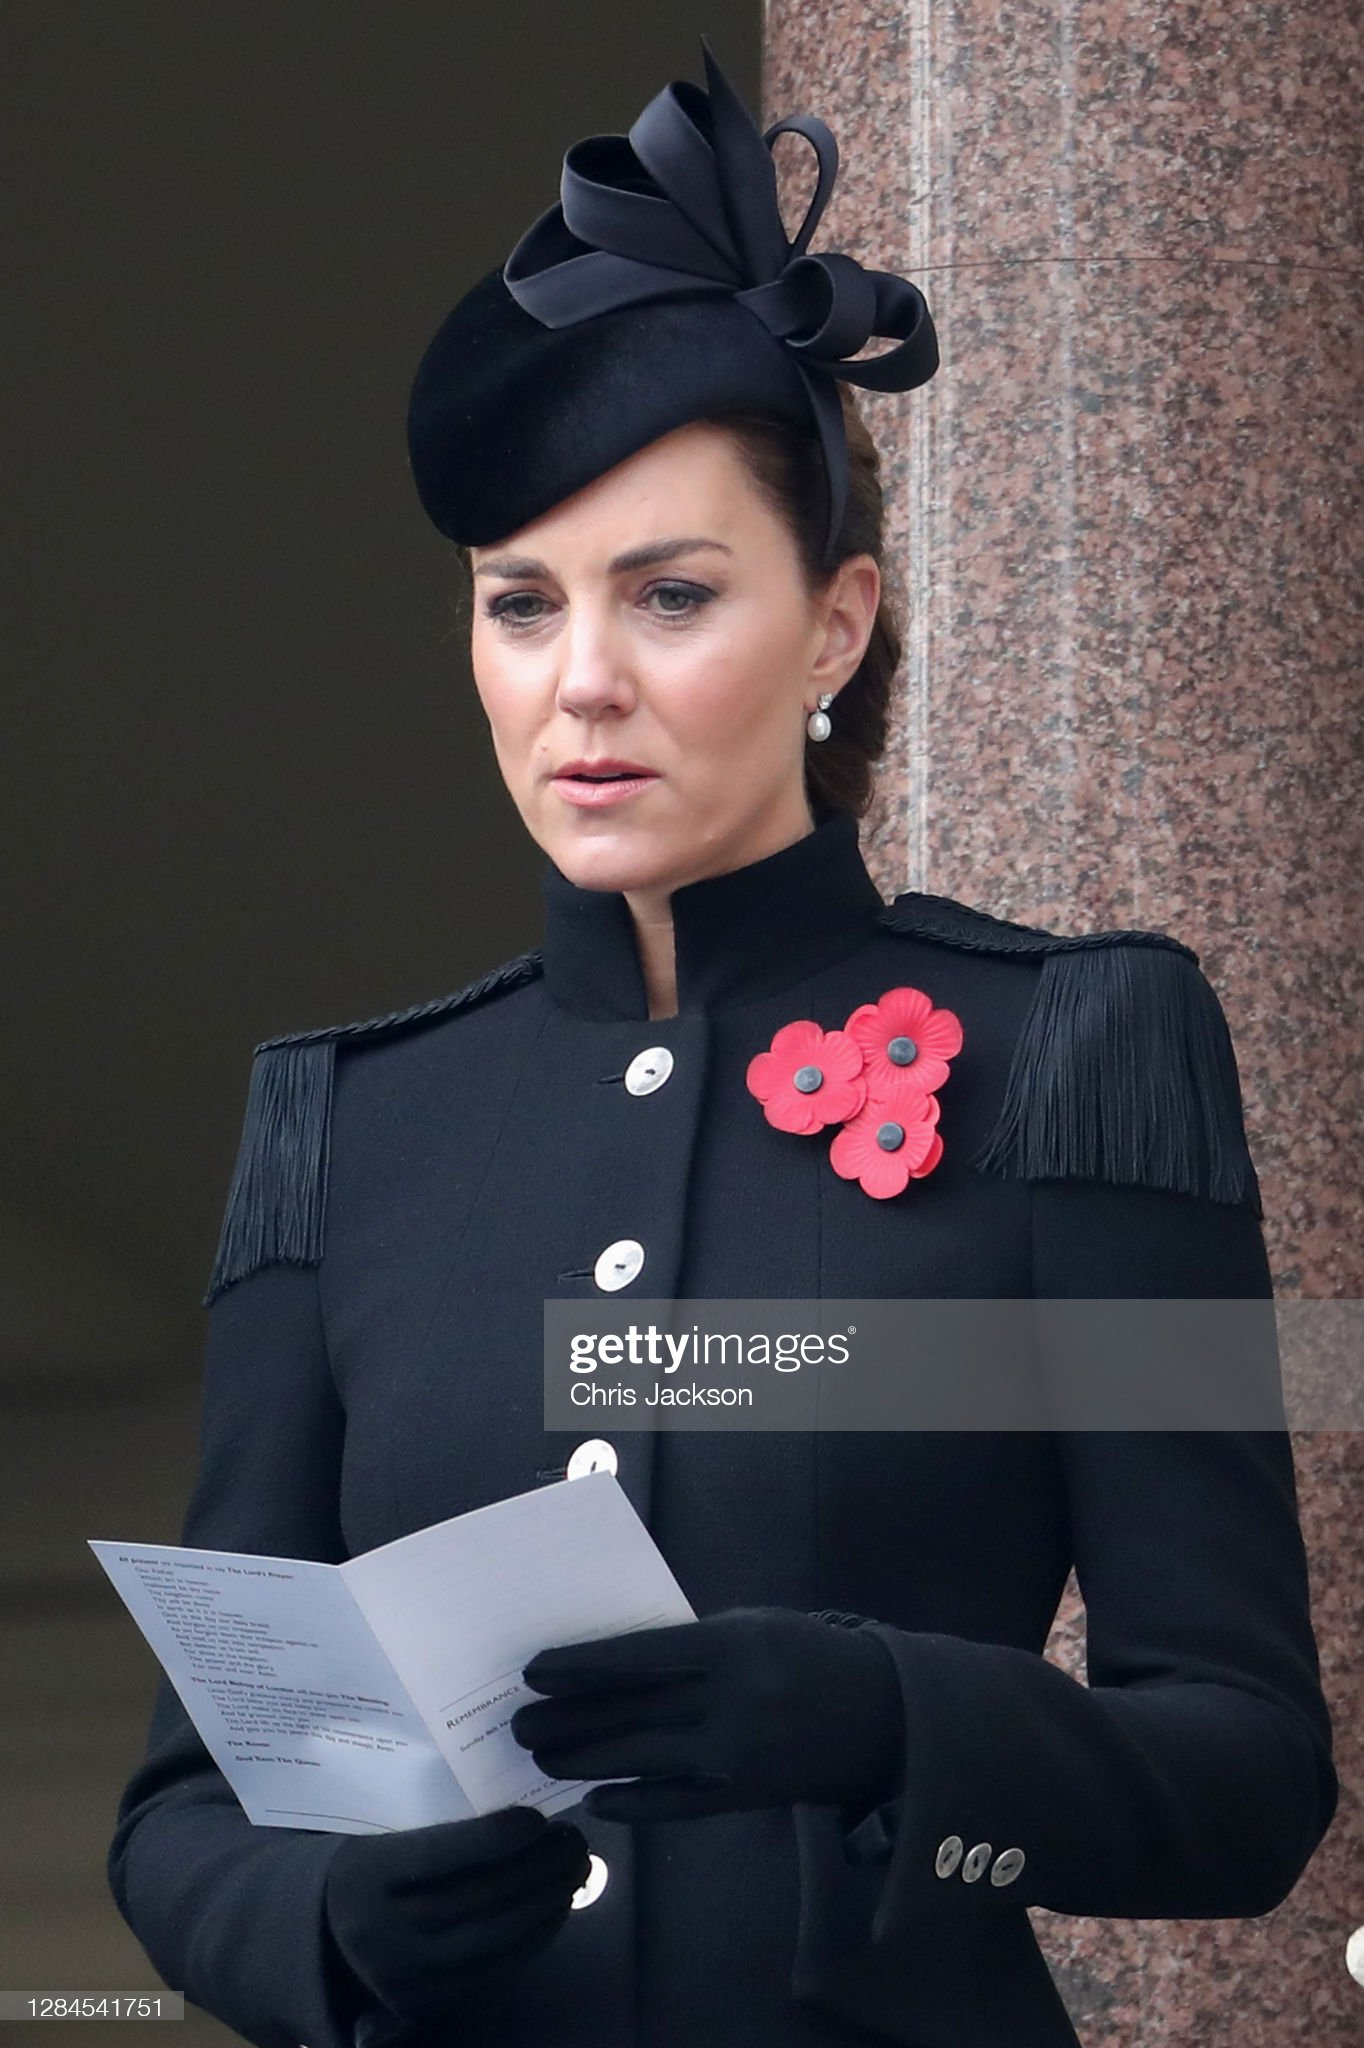 https://media.gettyimages.com/photos/catherine-duchess-of-cambridge-during-the-national-service-of-at-the-picture-id1284541751?s=2048x2048